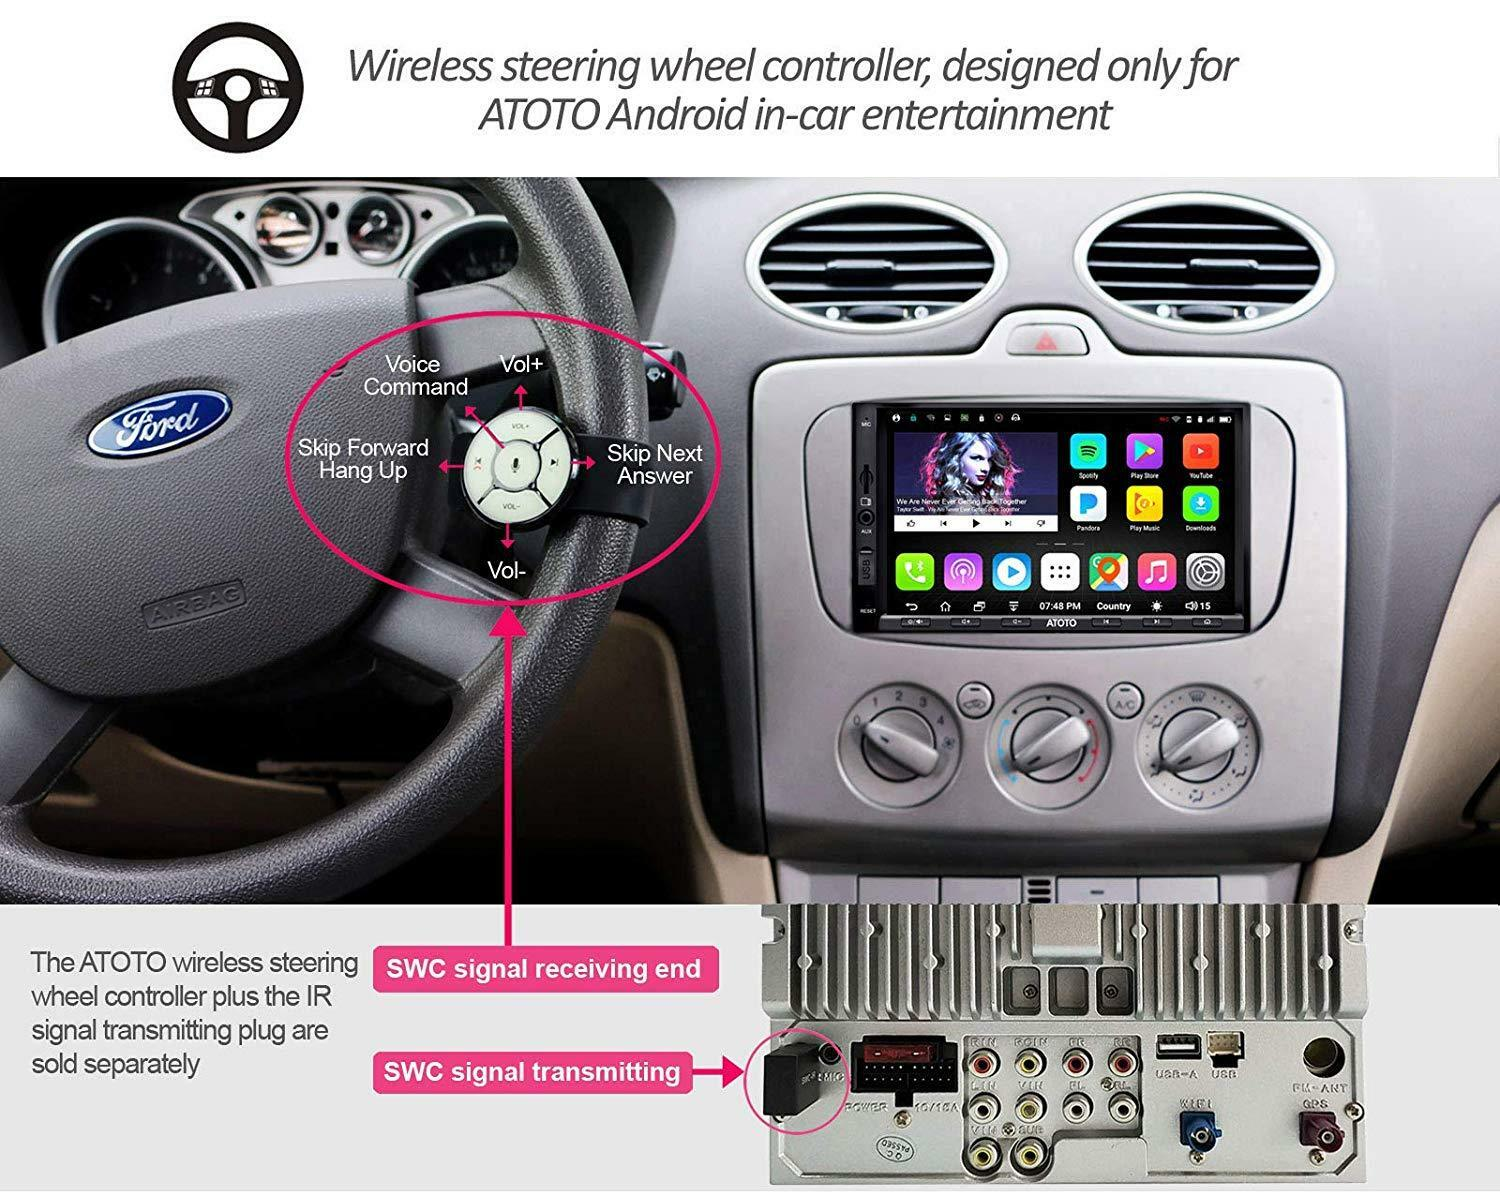 ATOTO A6 2 DIN Android Car GPS Stereo Radio /a6y2710sb W/ Solderless Harness